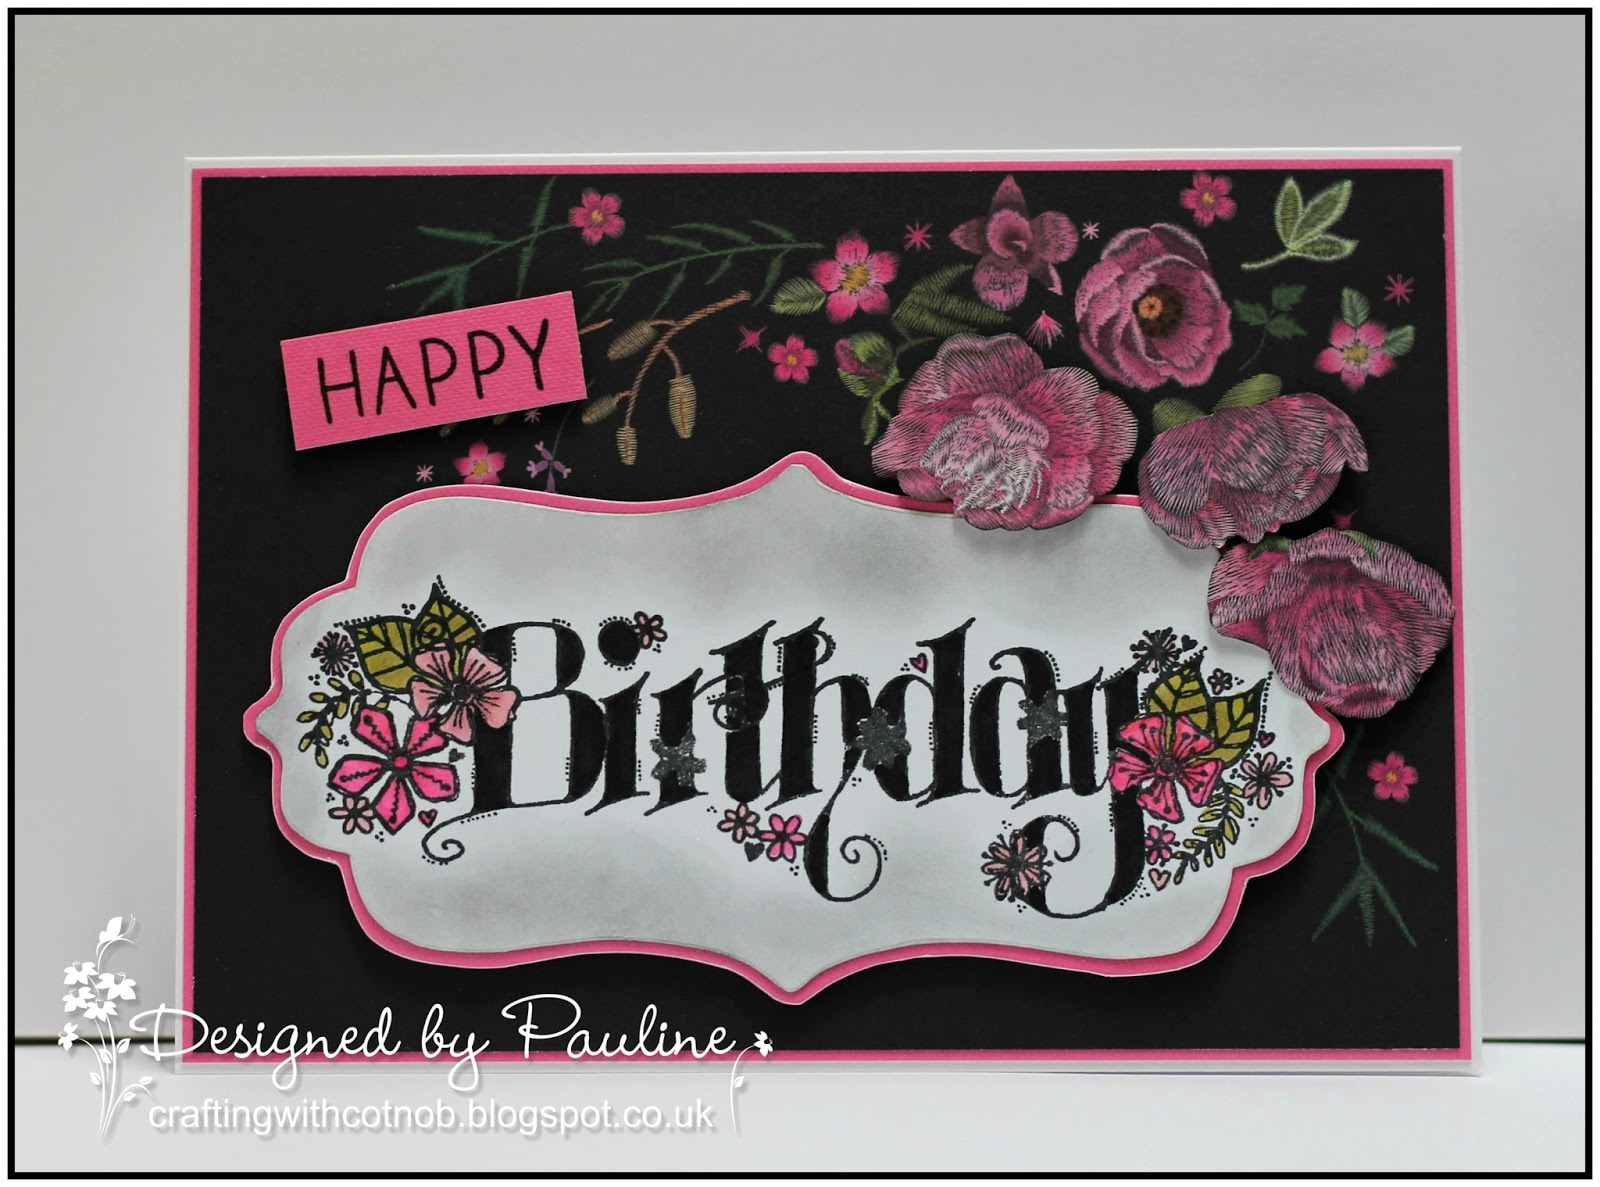 Crafting with Cotnob: Embroidered Birthday